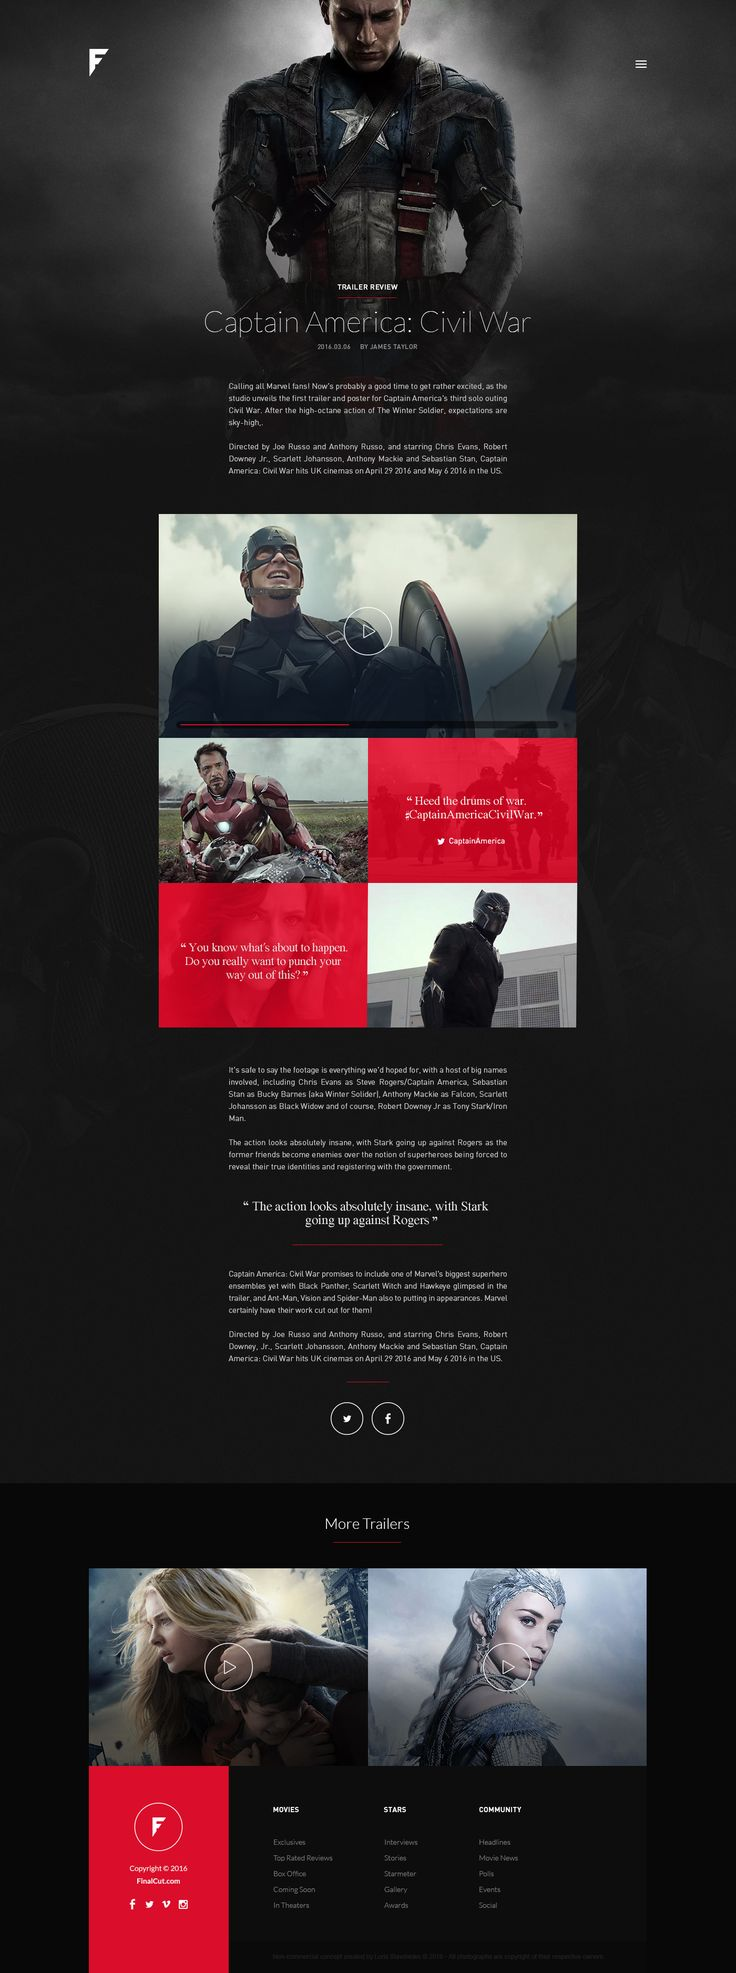 Concept design for an online magazine portal on the world of movie blockbusters, stars and big screen news. FinalCut aims to be a more cutting-edge, mature, and modern approach to movie reviews and exclusive news & interviews. This is a personal non-comme…